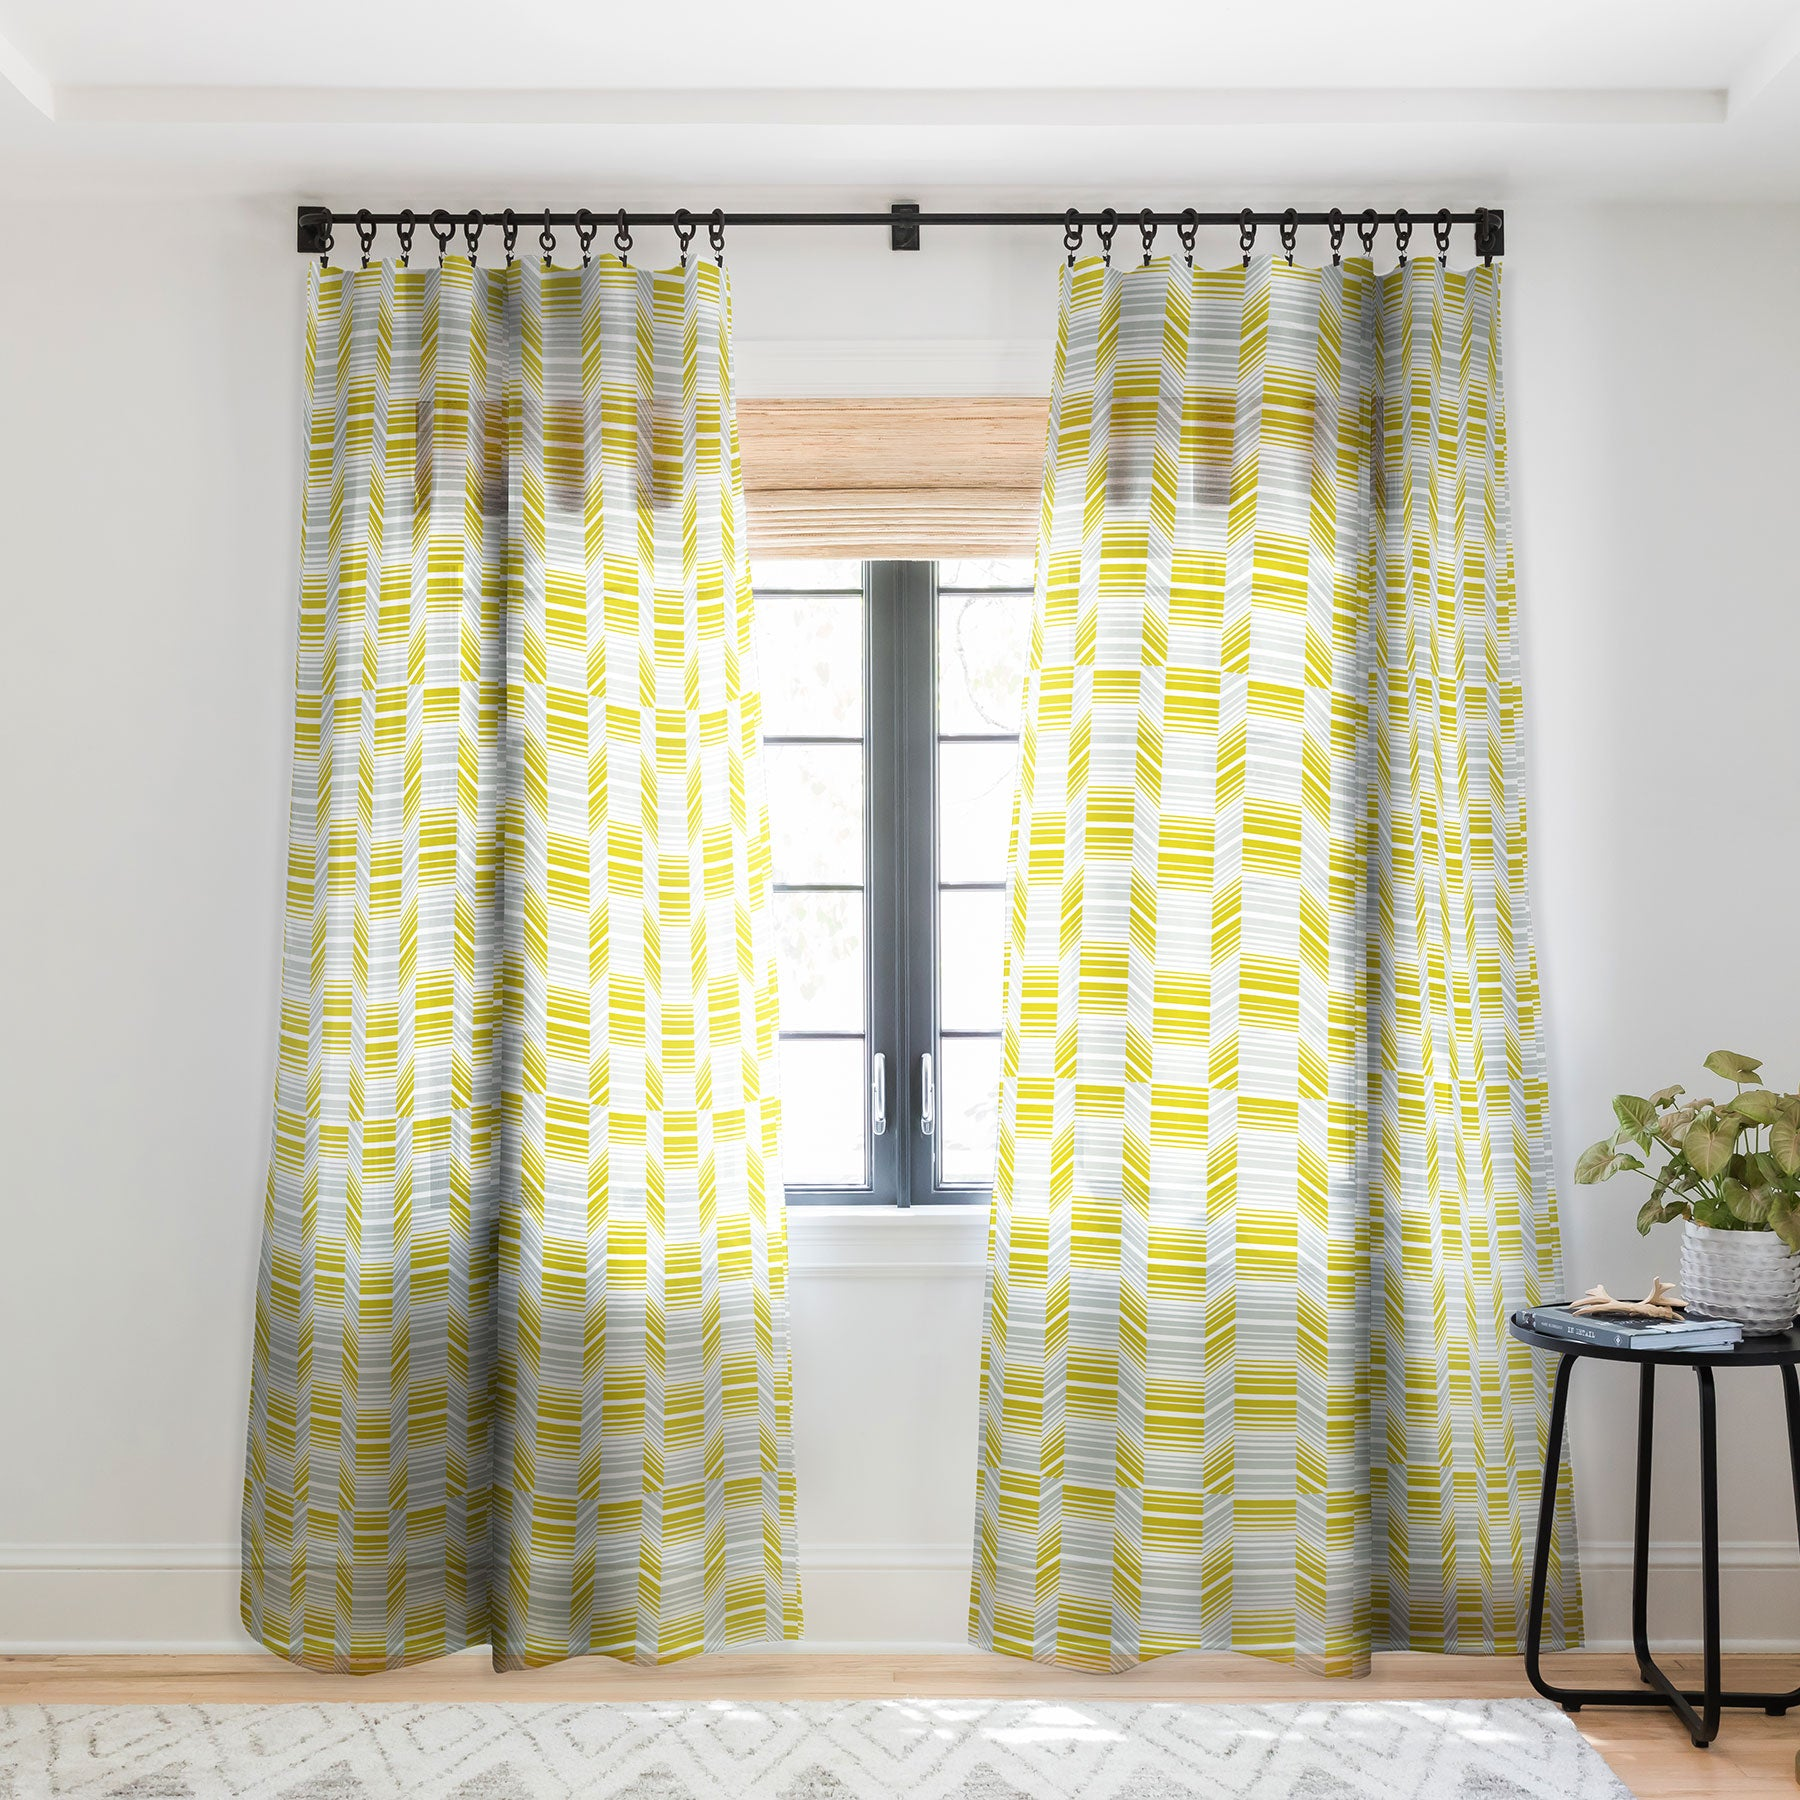 Heather Dutton Delineate Citron Sheer Window Curtain